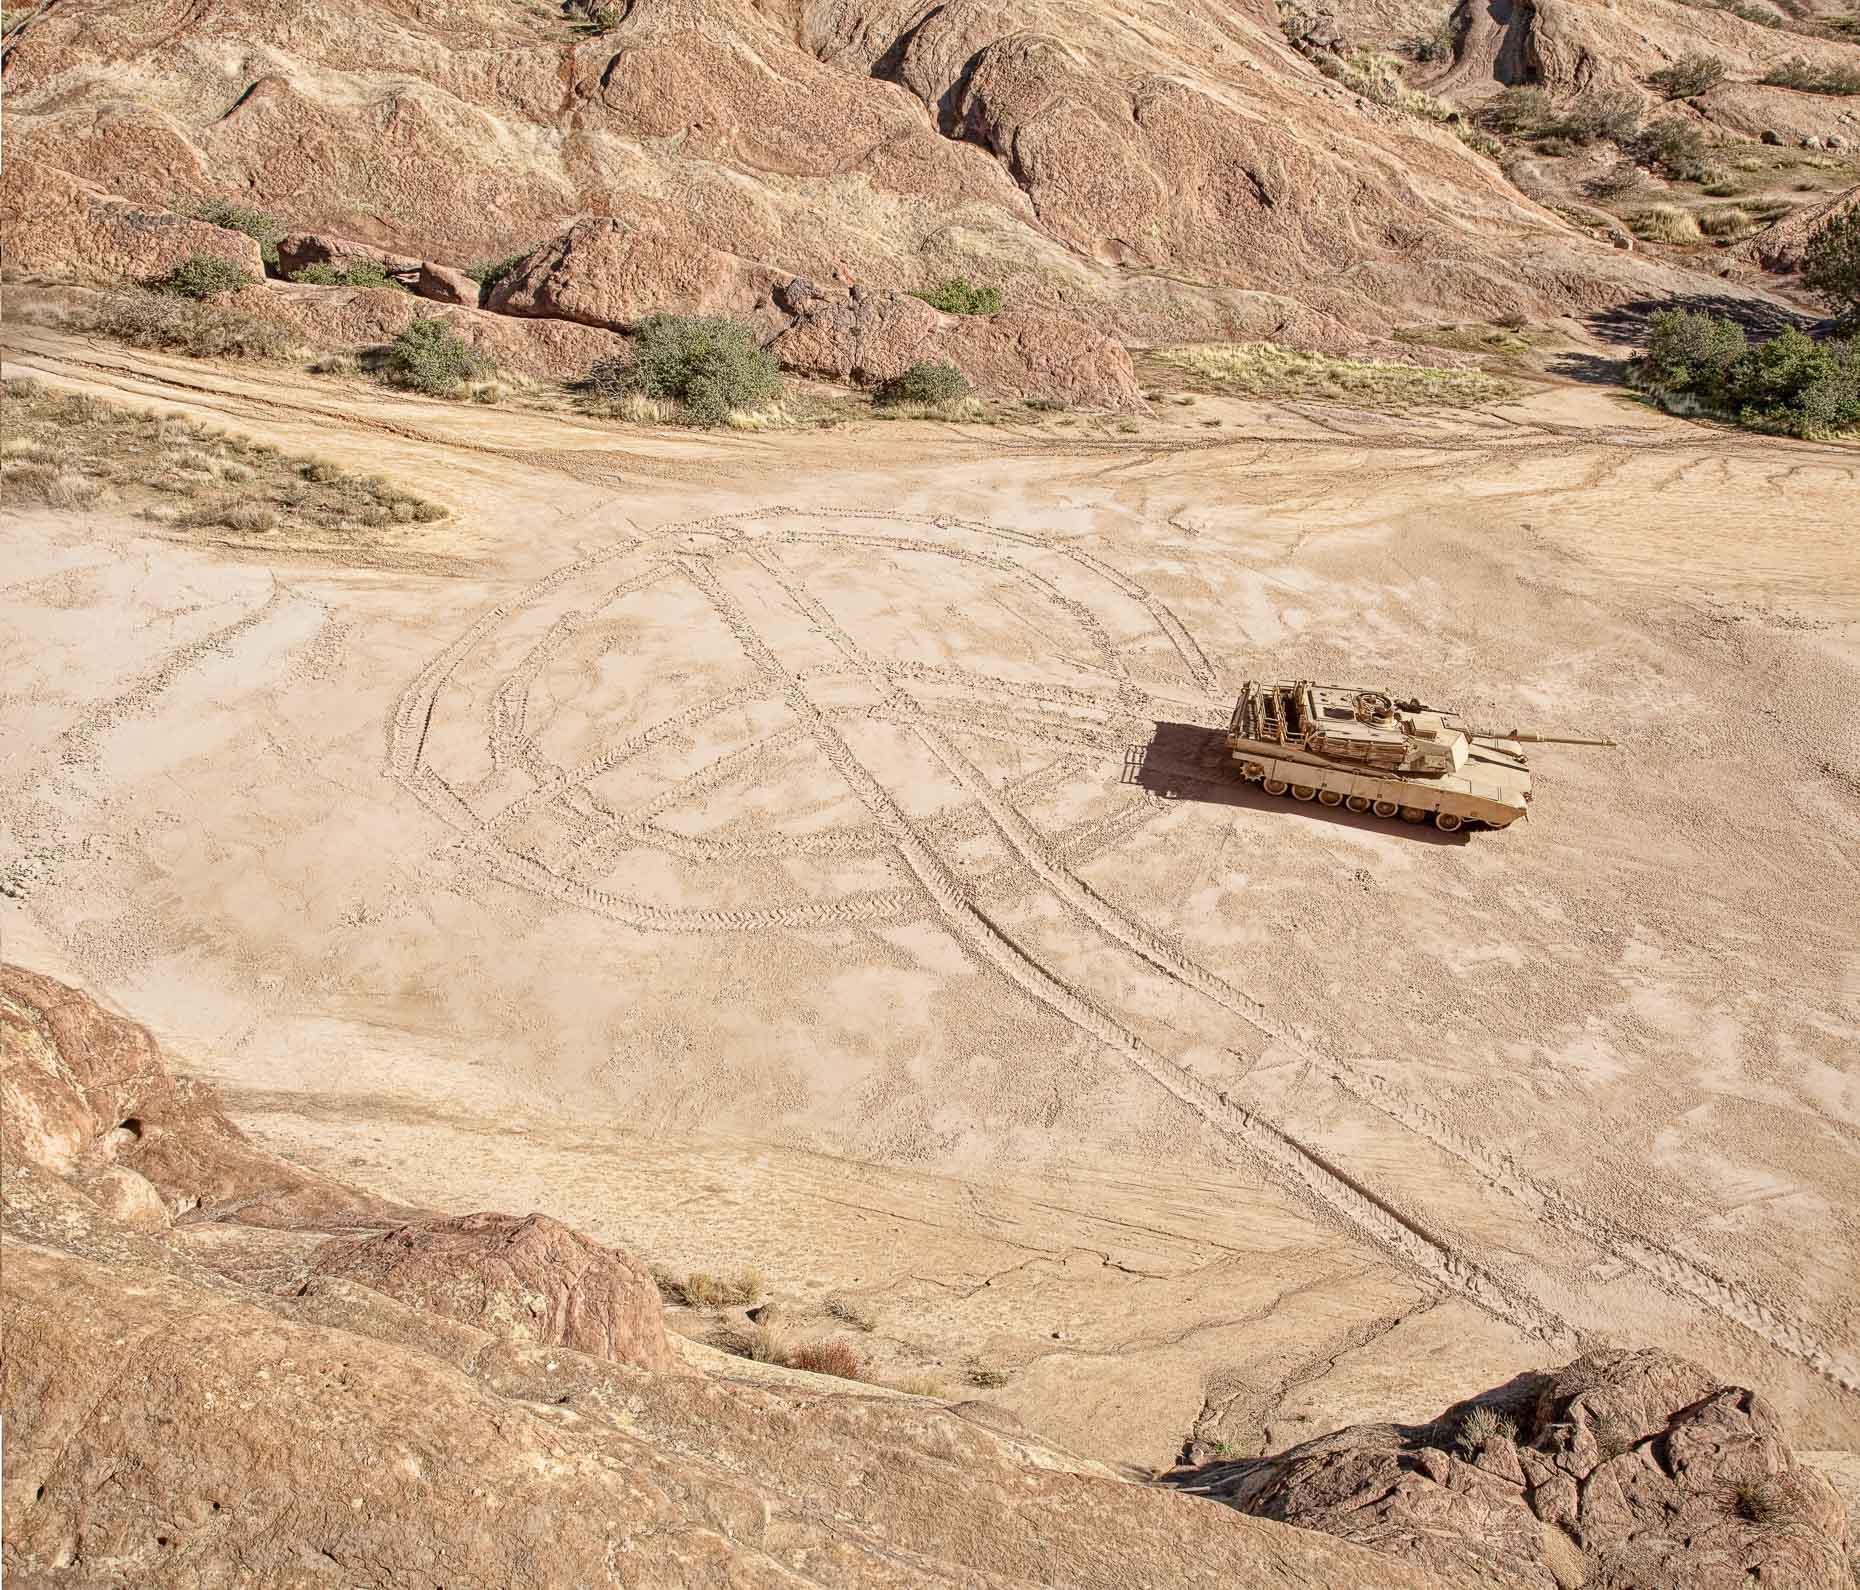 Military tank draws a peace symbol in dirt ground. David Zaitz.